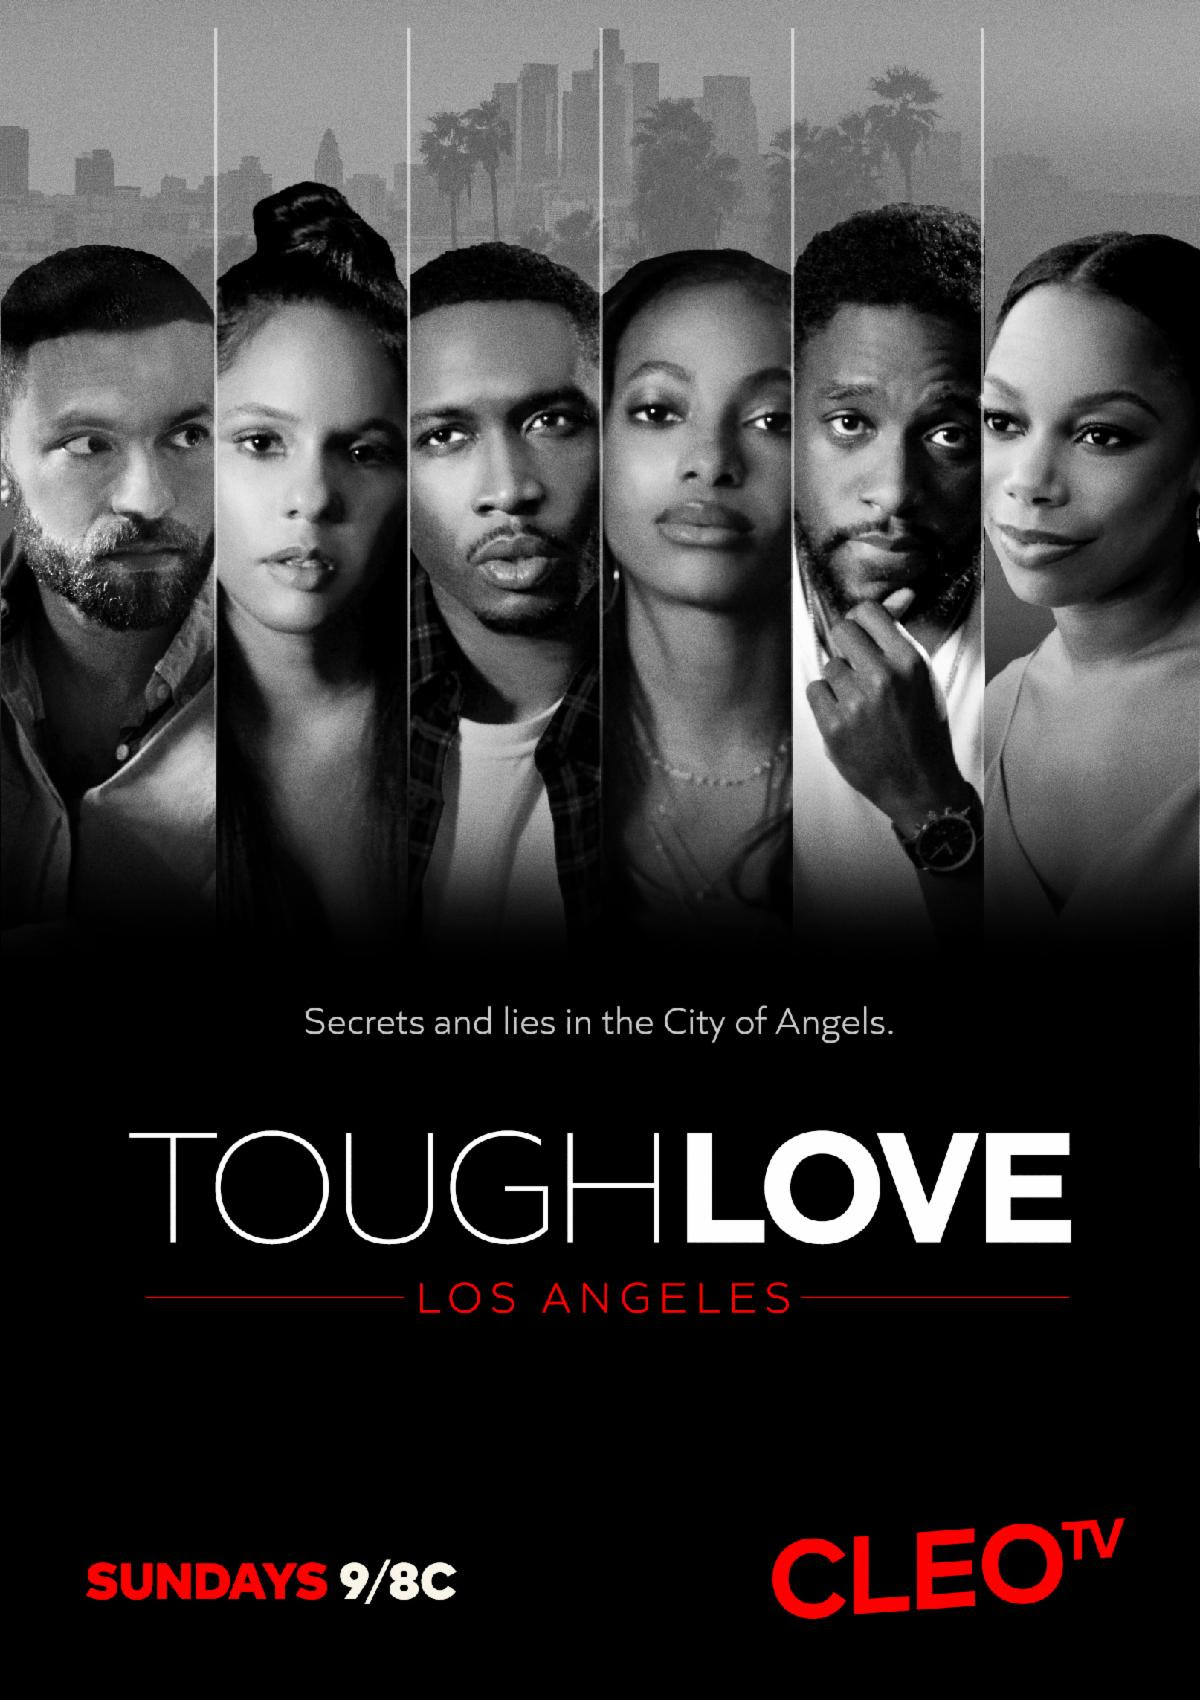 CLEO TV'S MILLENNIAL DRAMA TOUGH LOVE: LOS ANGELES SPOTLIGHTS FLAWS AND FEARS THIS SUNDAY, DECEMBER 20 AT 9 P.M. ET/8C